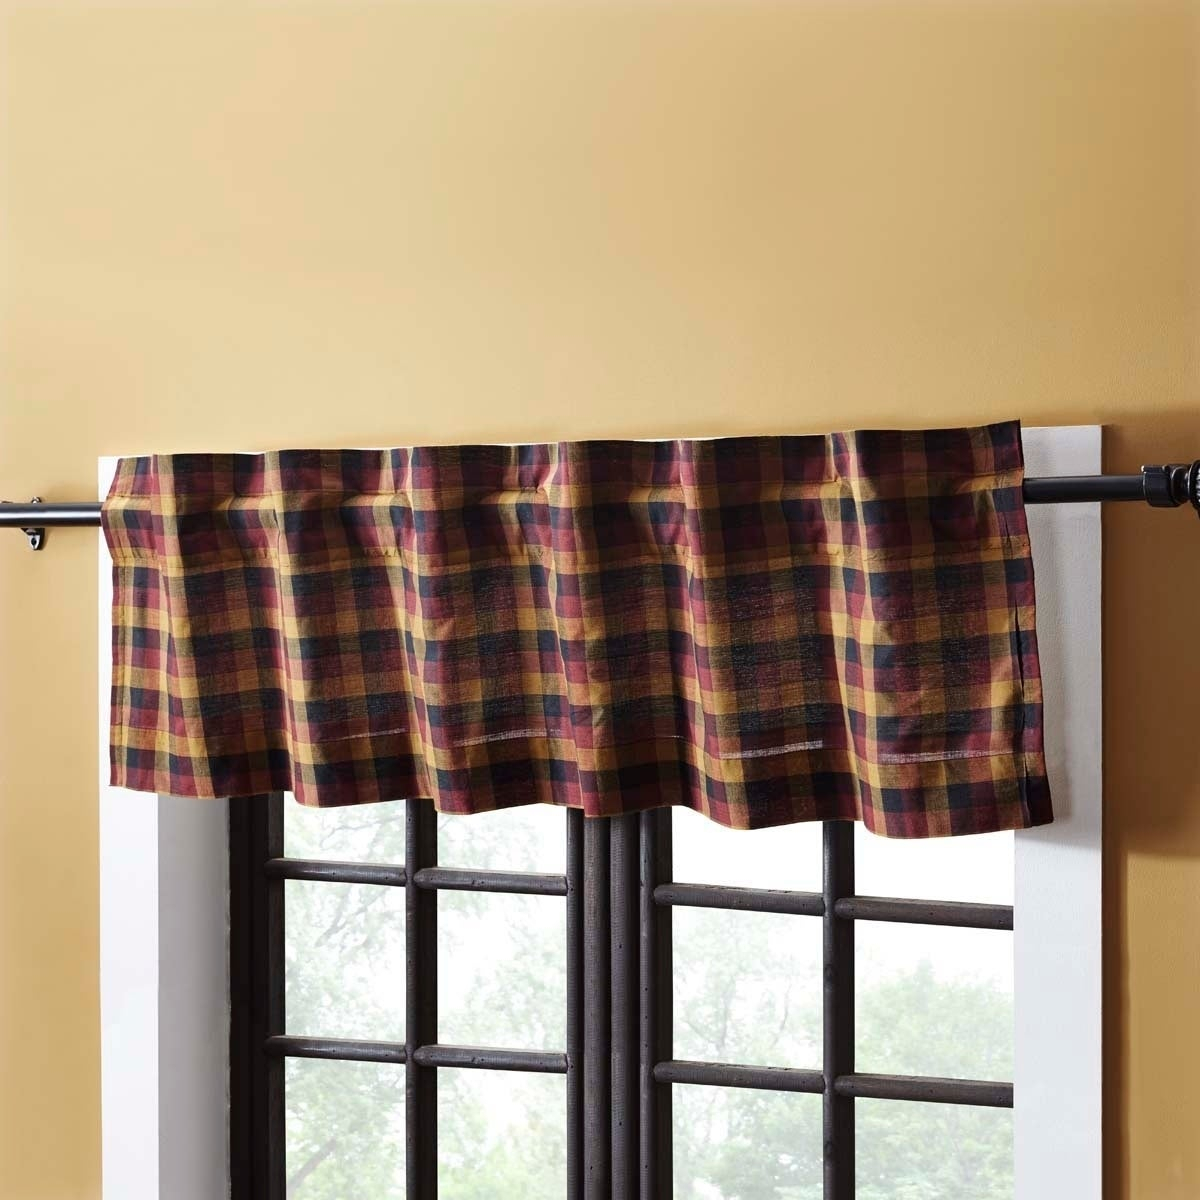 Red Primitive Kitchen Curtains Vhc Heritage Farms Valance Rod Pocket Cotton  Plaid – 16X72 Intended For Red Primitive Kitchen Curtains (Gallery 3 of 20)